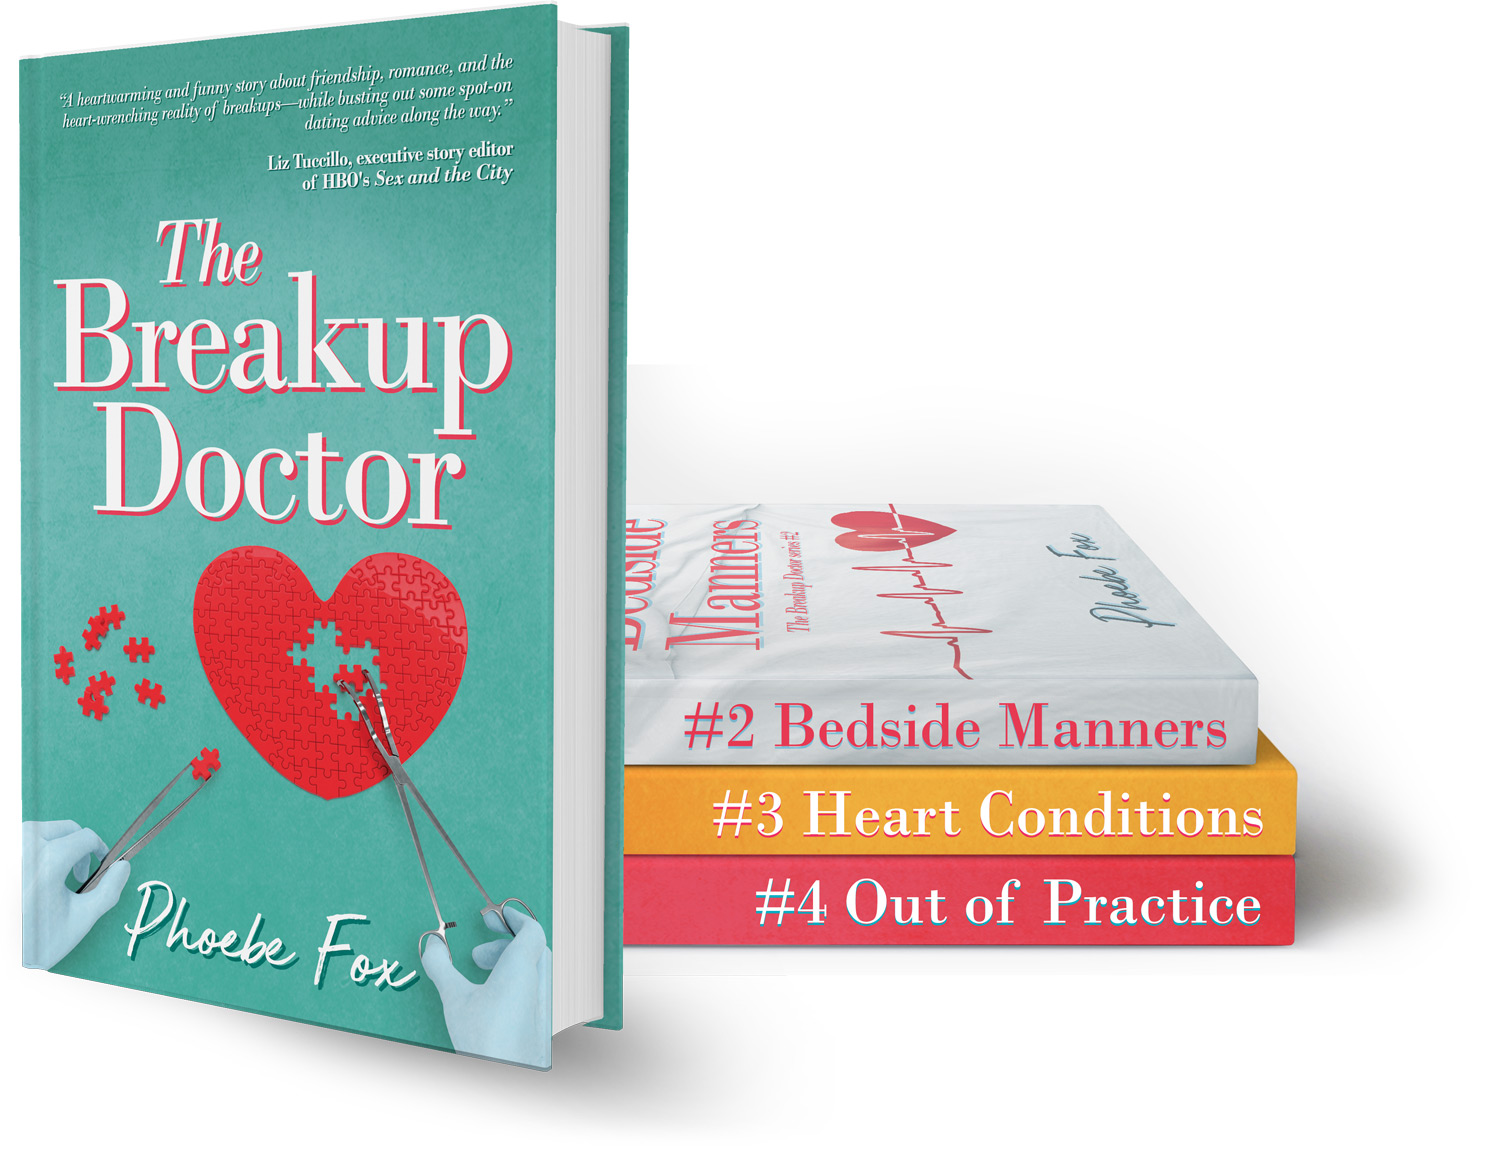 The Breakup Doctor series by Phoebe Fox